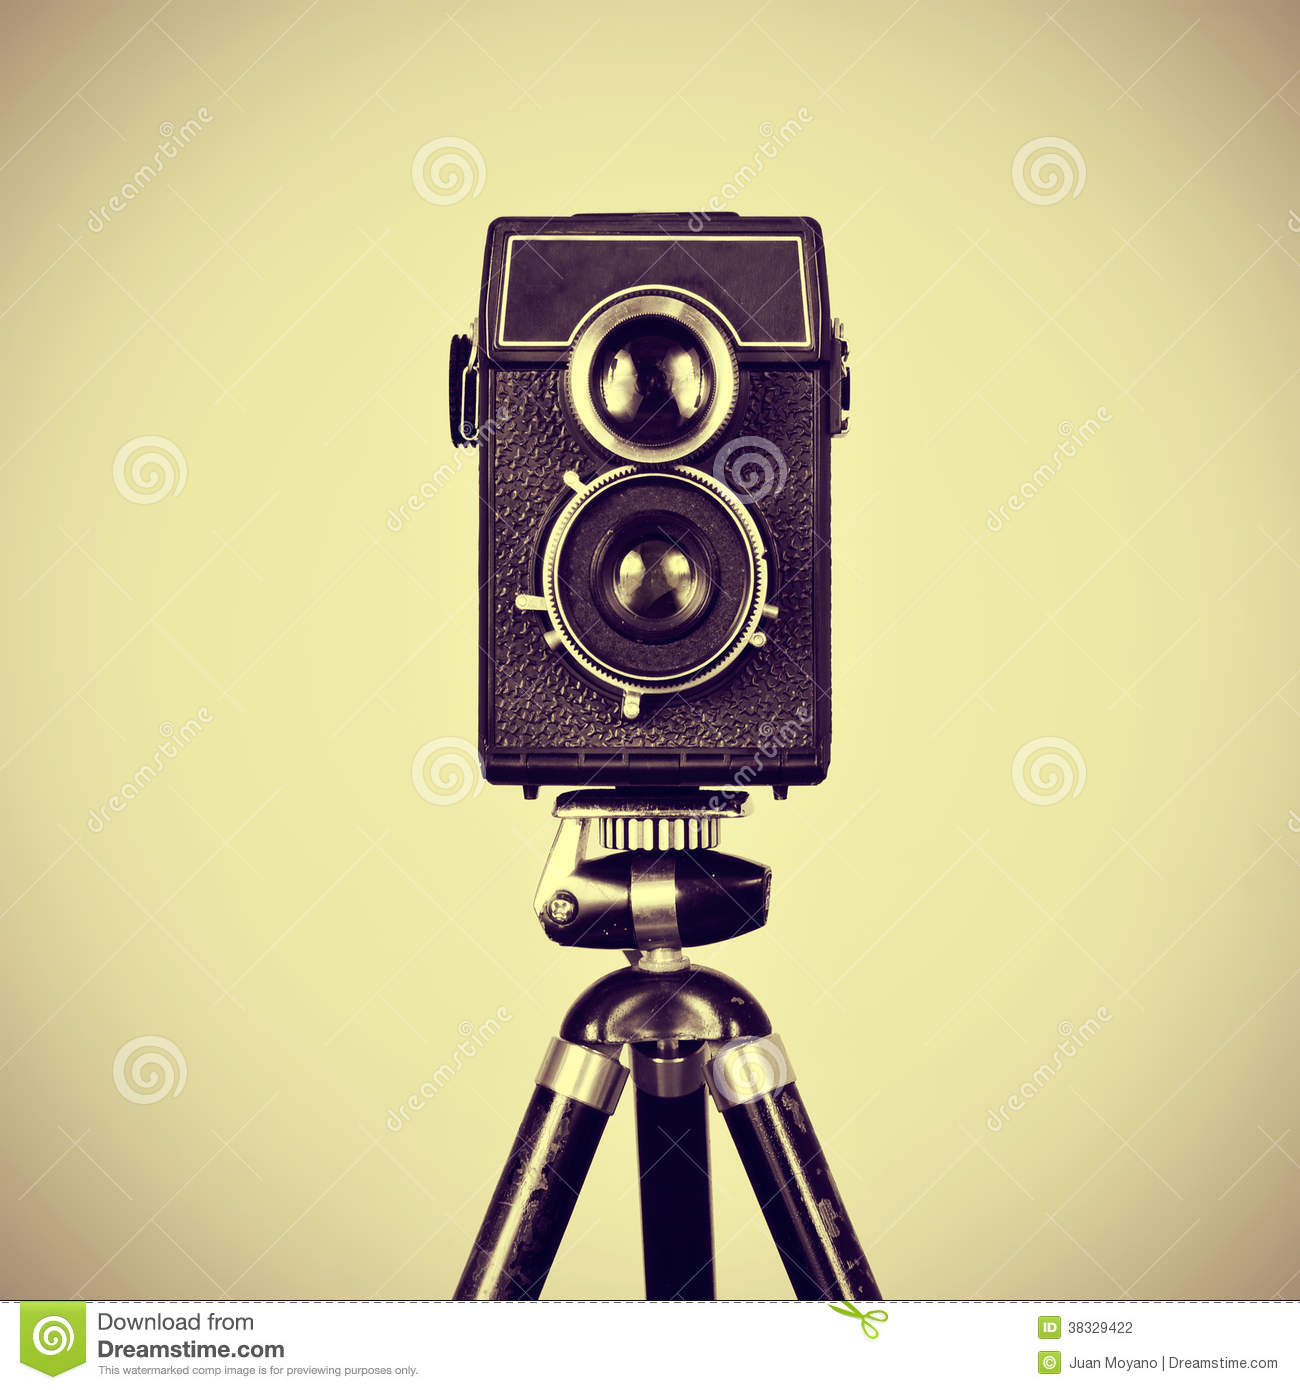 Old Camera Tripod Stock Photos, Images, & Pictures - 763 Images